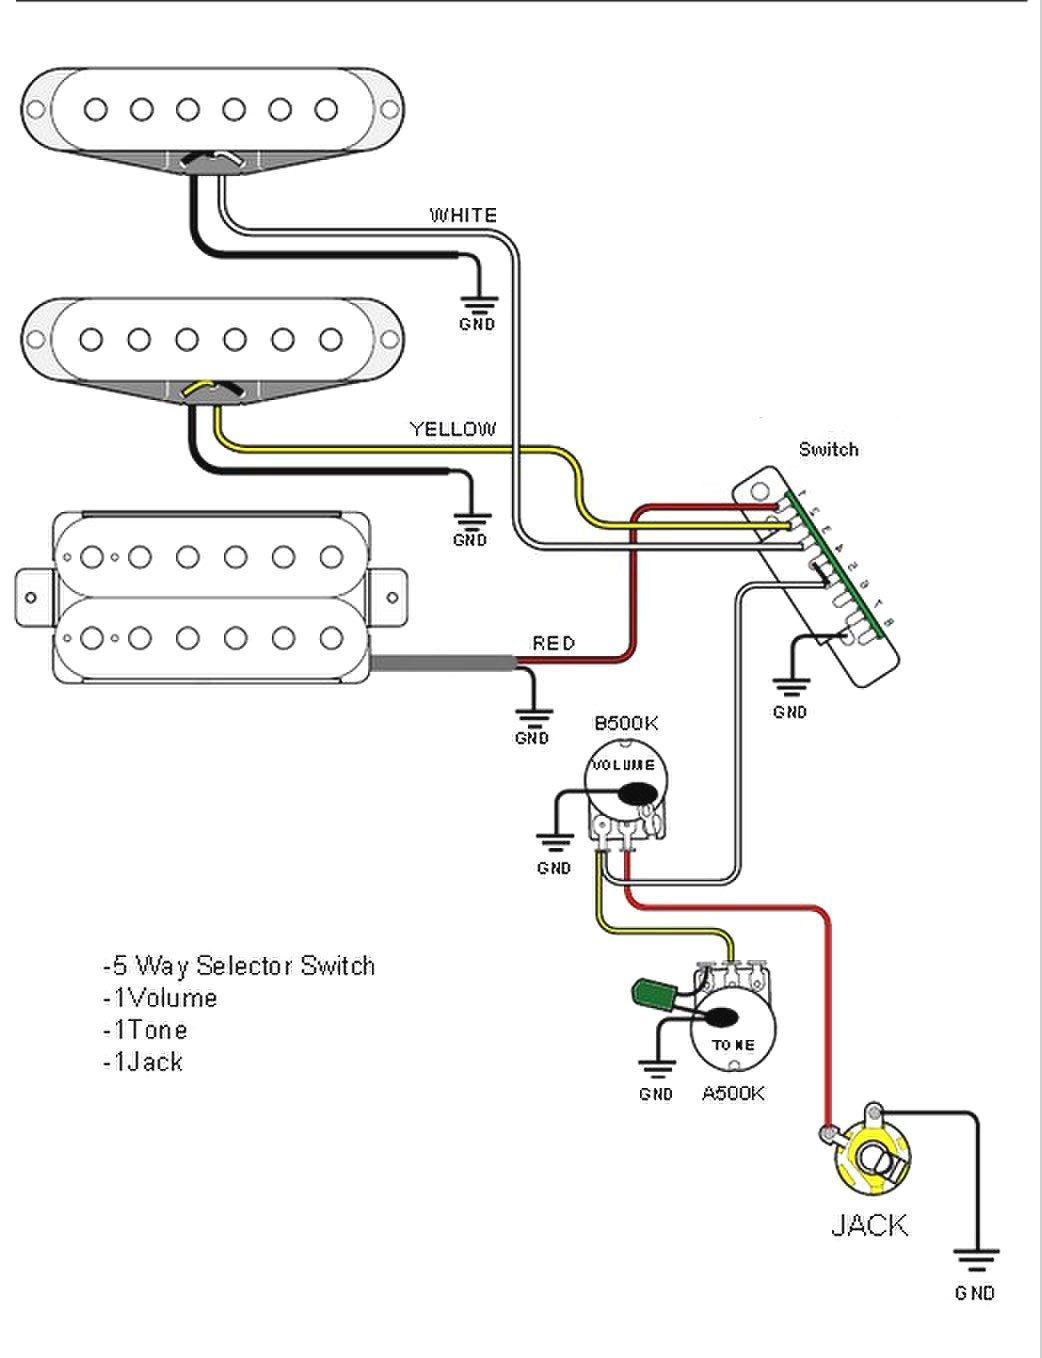 1975 Fender Stratocaster Wiring Diagram Just Another Guitar Diagrams Modifications Library Rh 43 Kellerentruempeln Kosten De Strat Mods